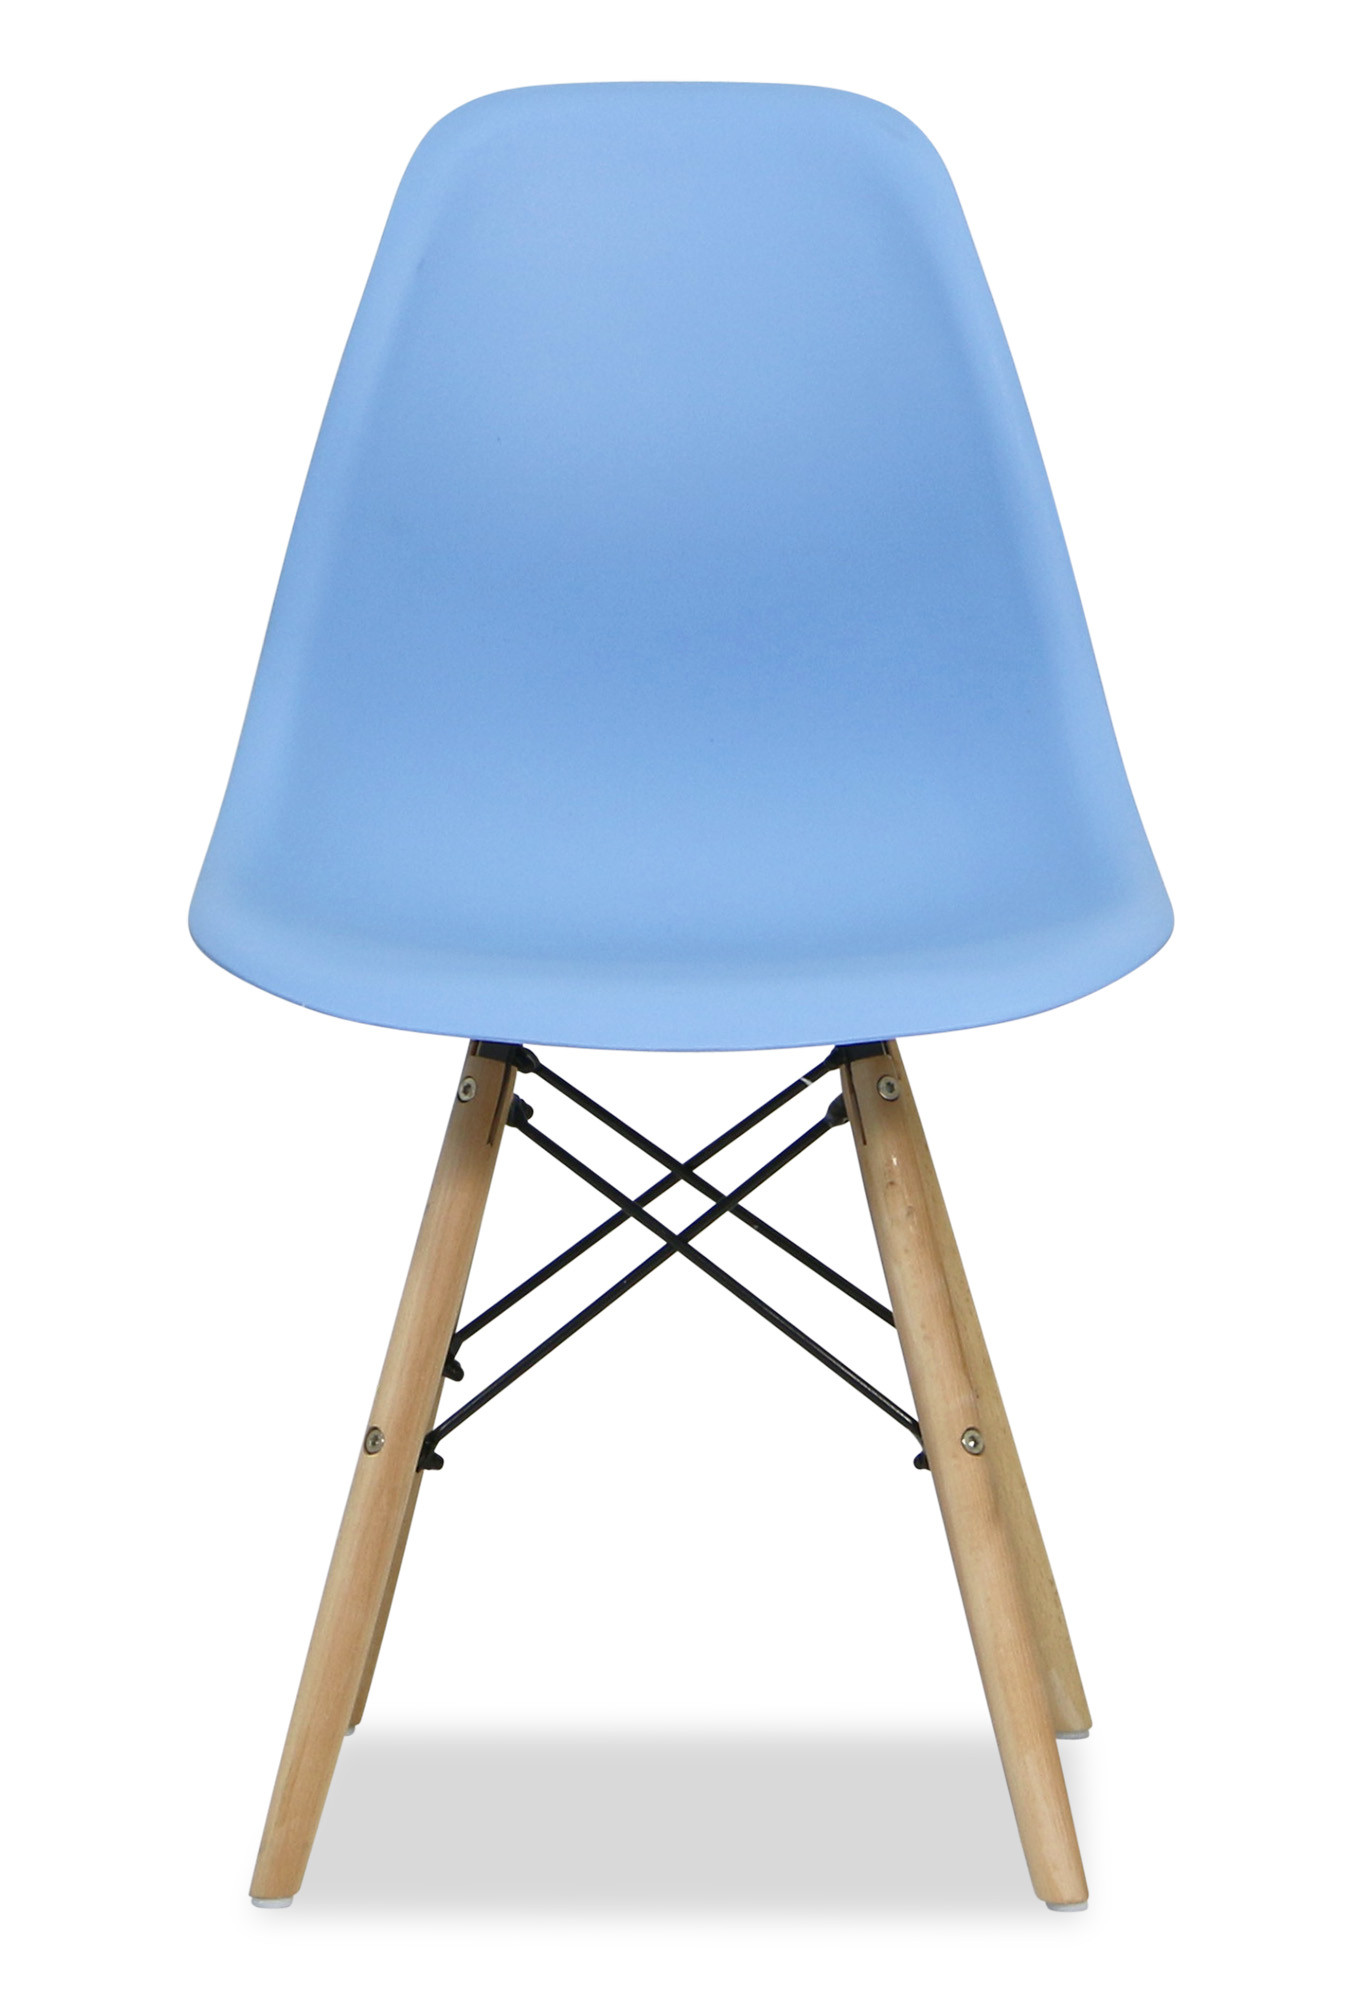 Eames baby blue replica designer chair dining room for Imitation designer chairs